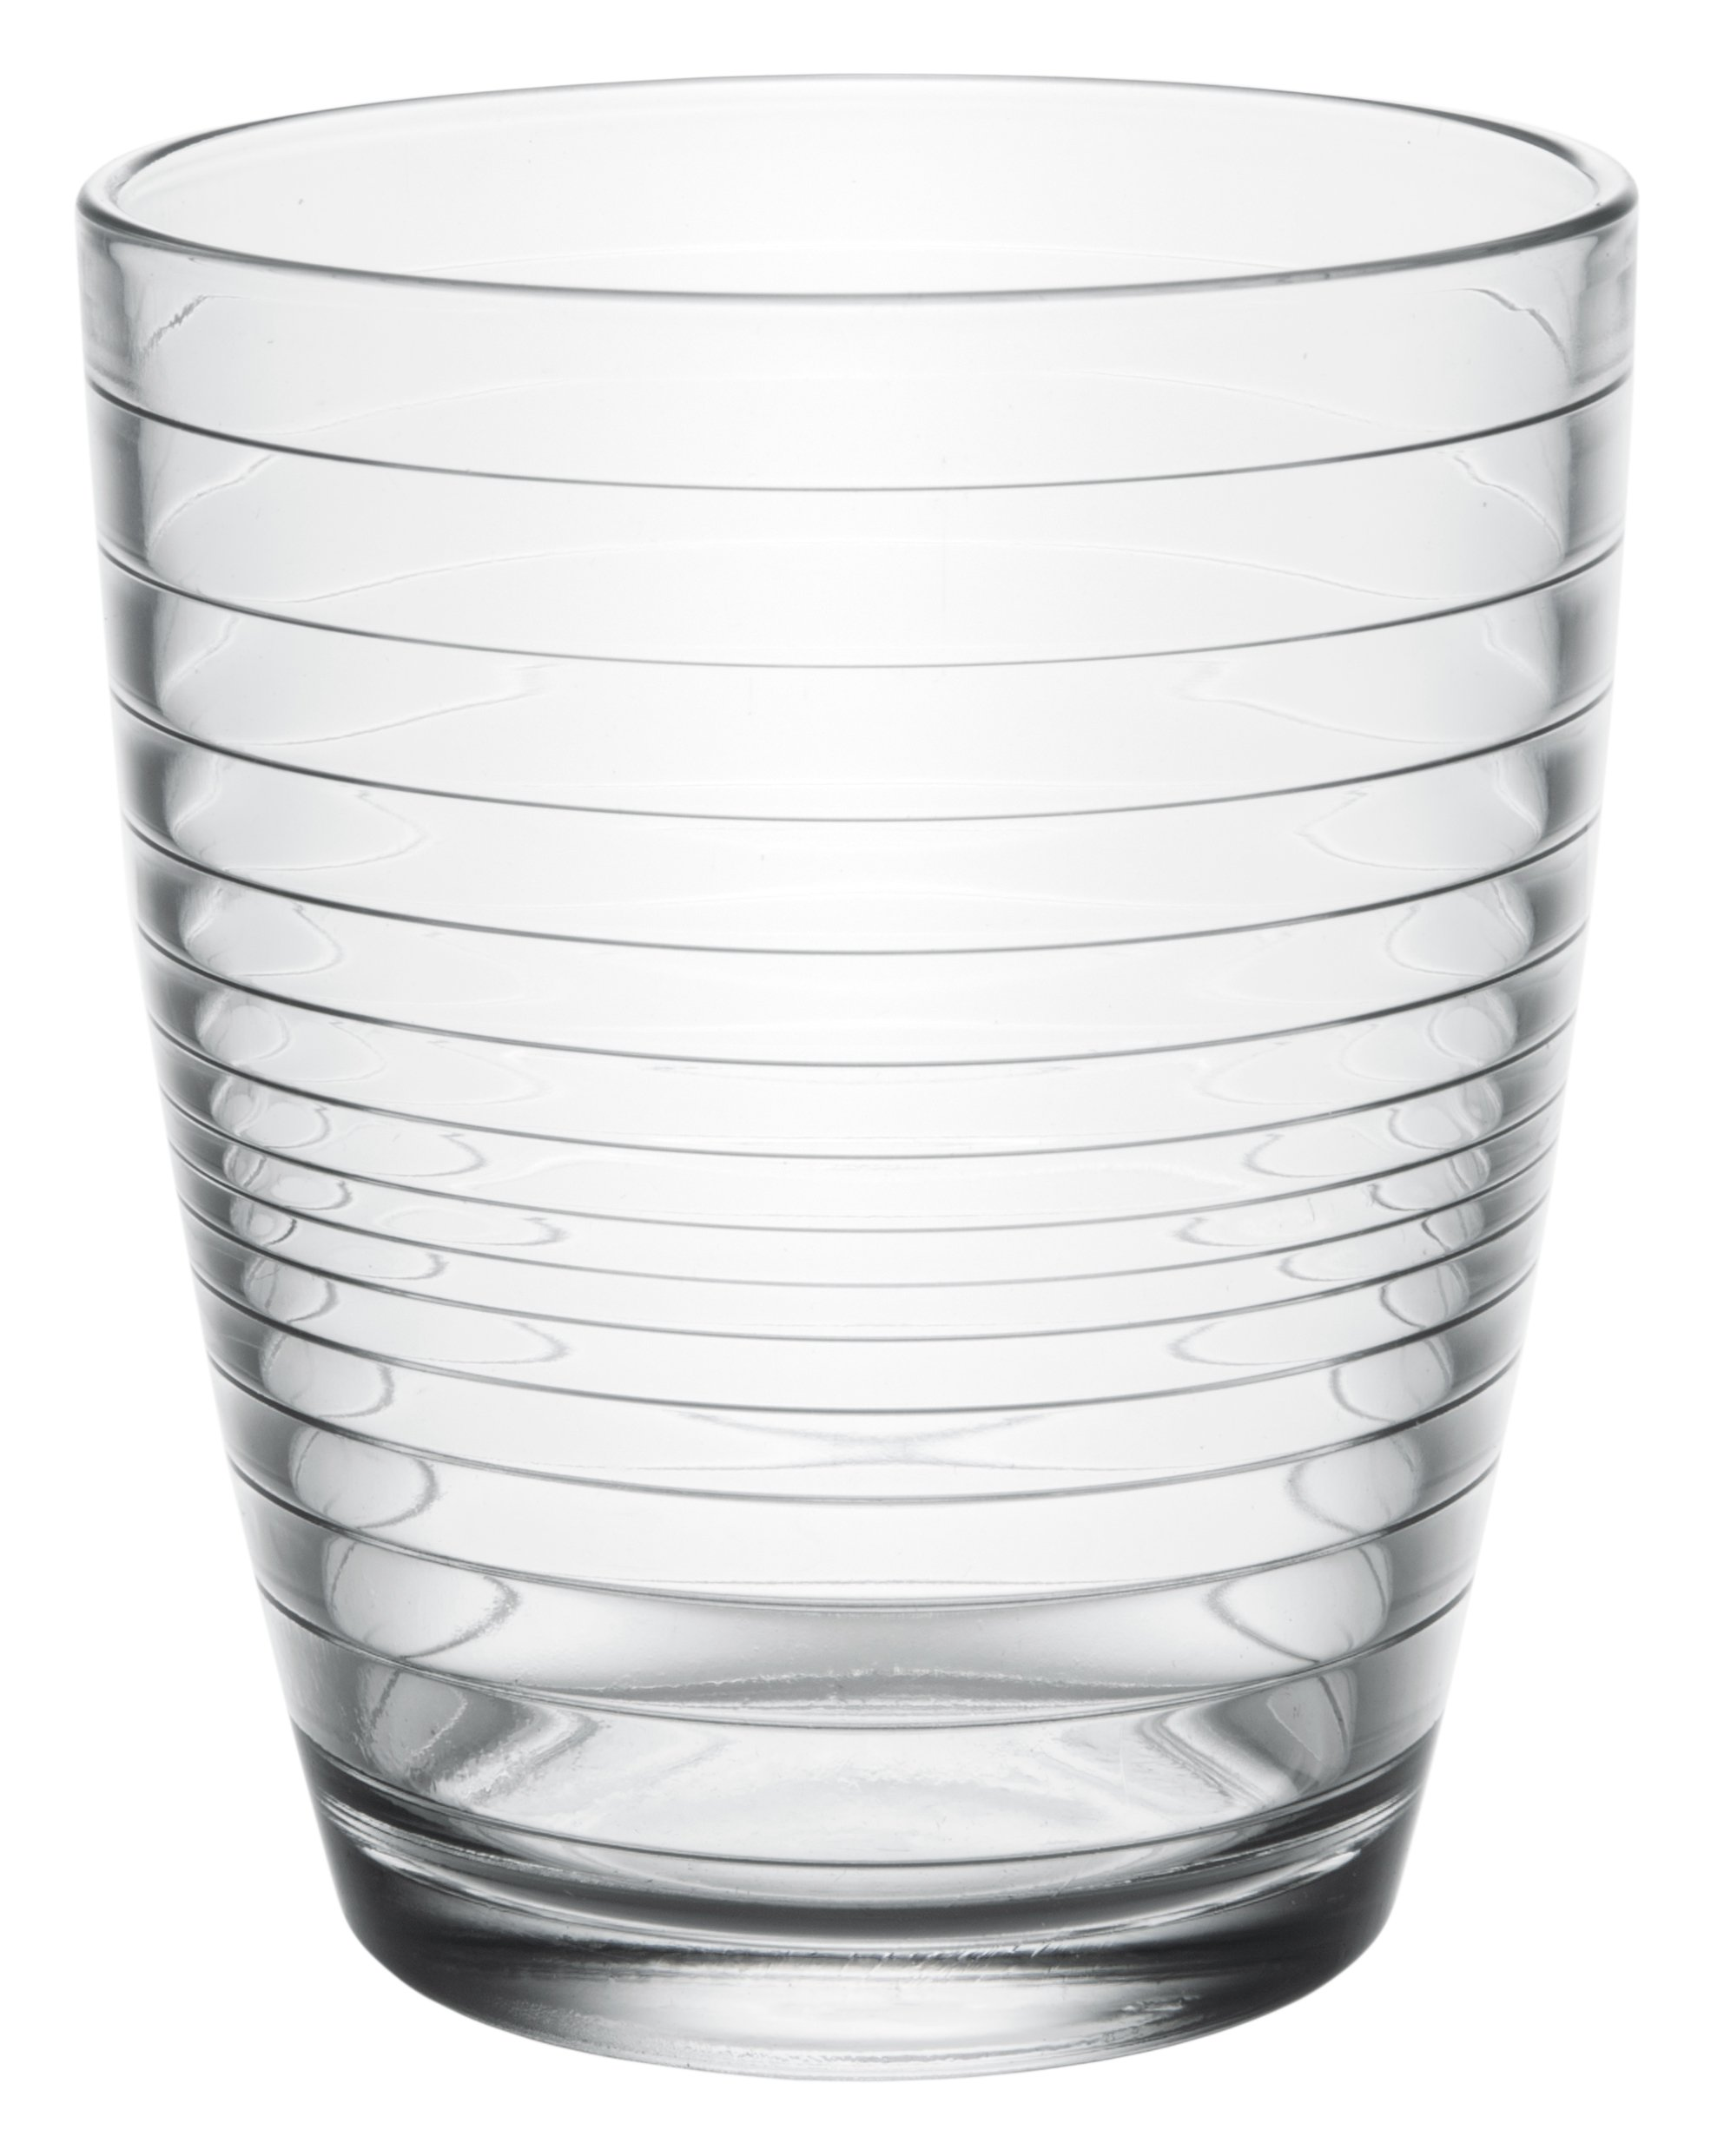 Apollon Modern Clear Glass Short Iced Tea Cups, Drinking Glasses Water Juice Soda Beverage Tumblers, Set of 6, 11 fl oz